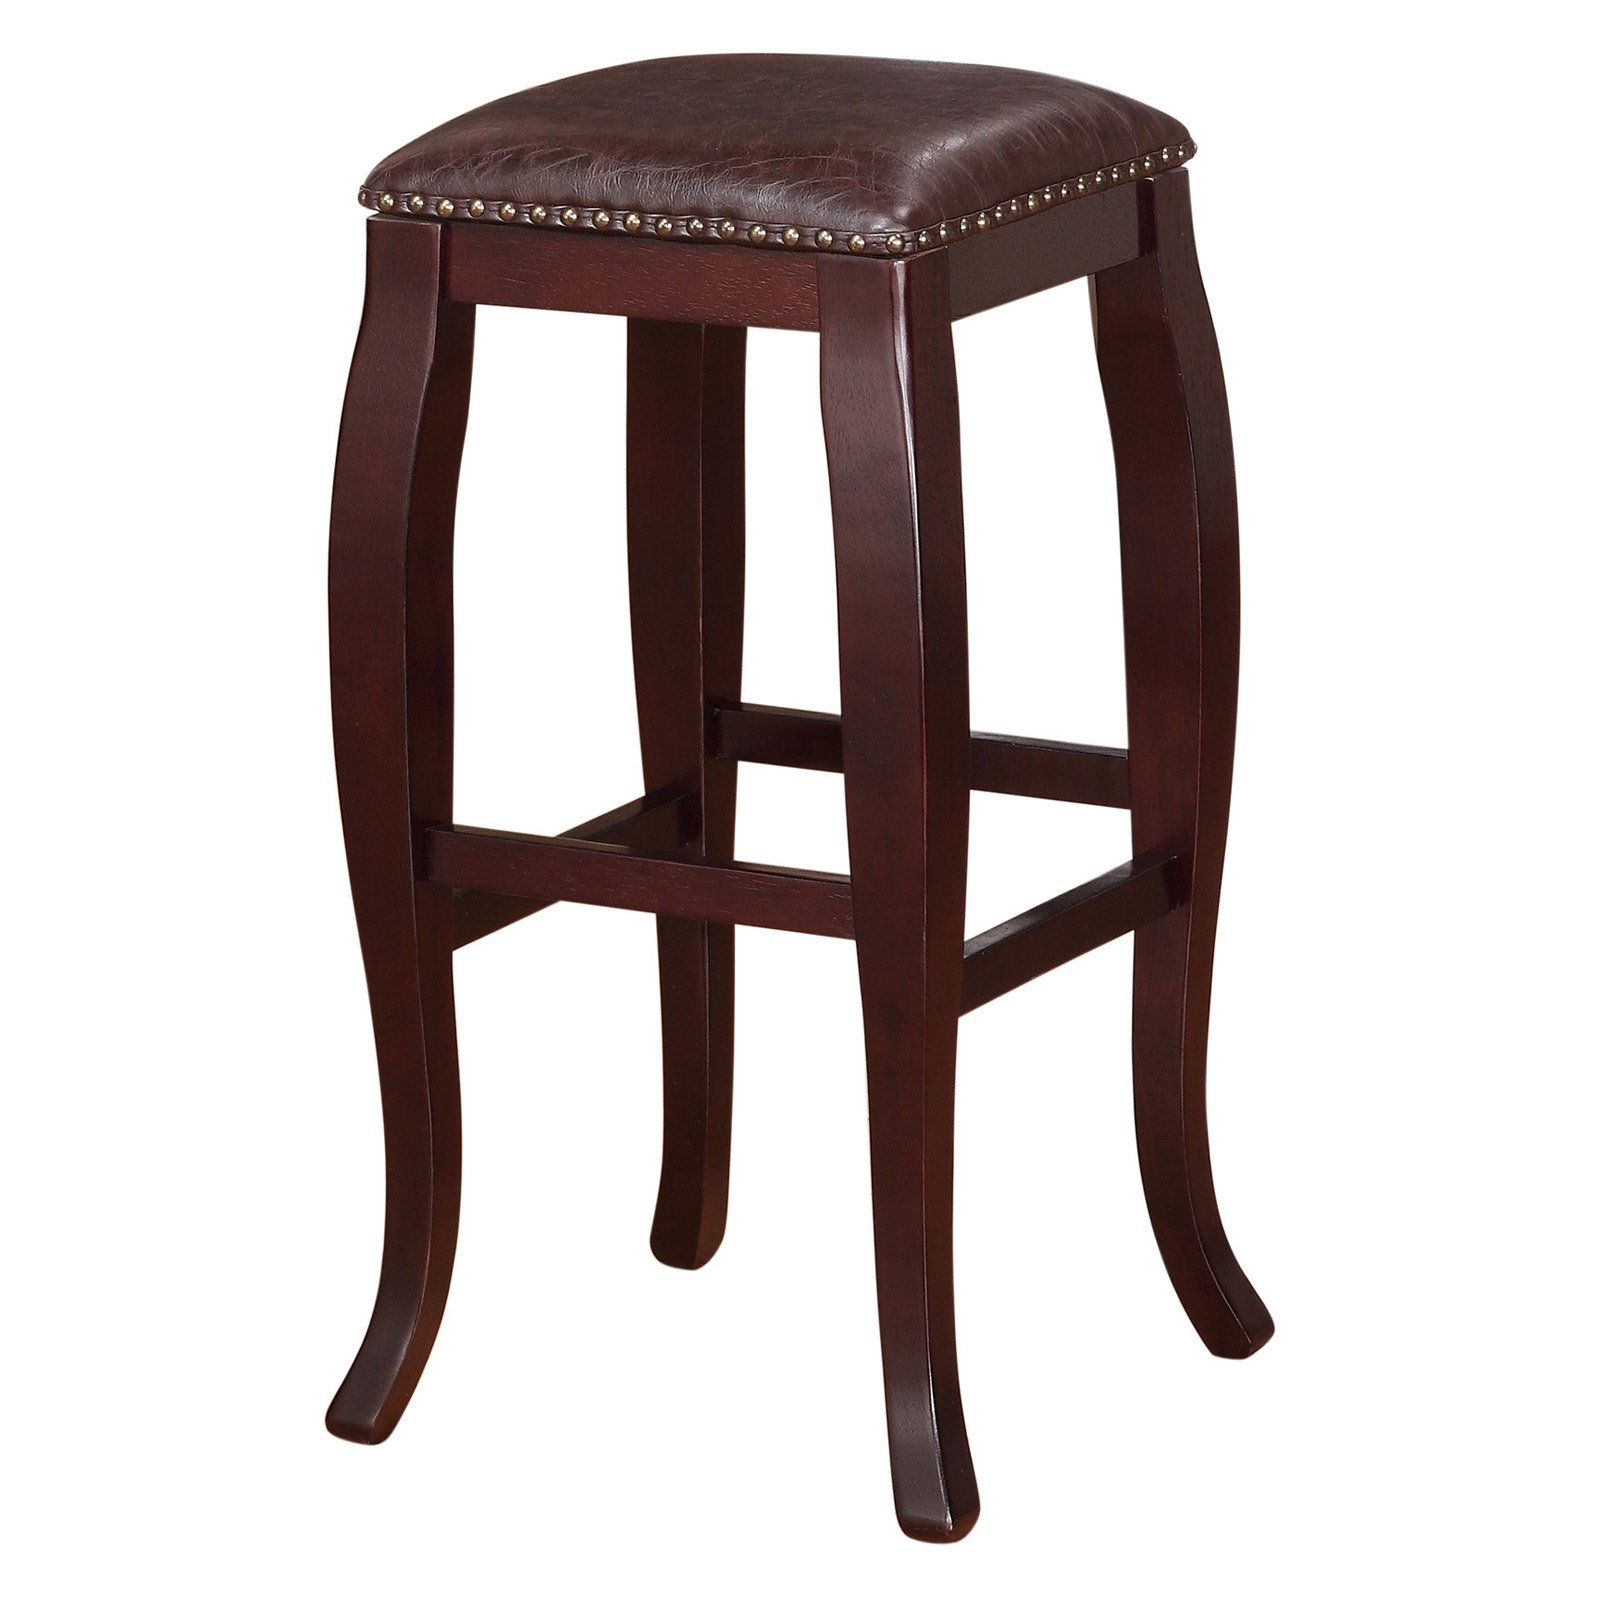 Wood Top Bar Stools Audidatlevante Com